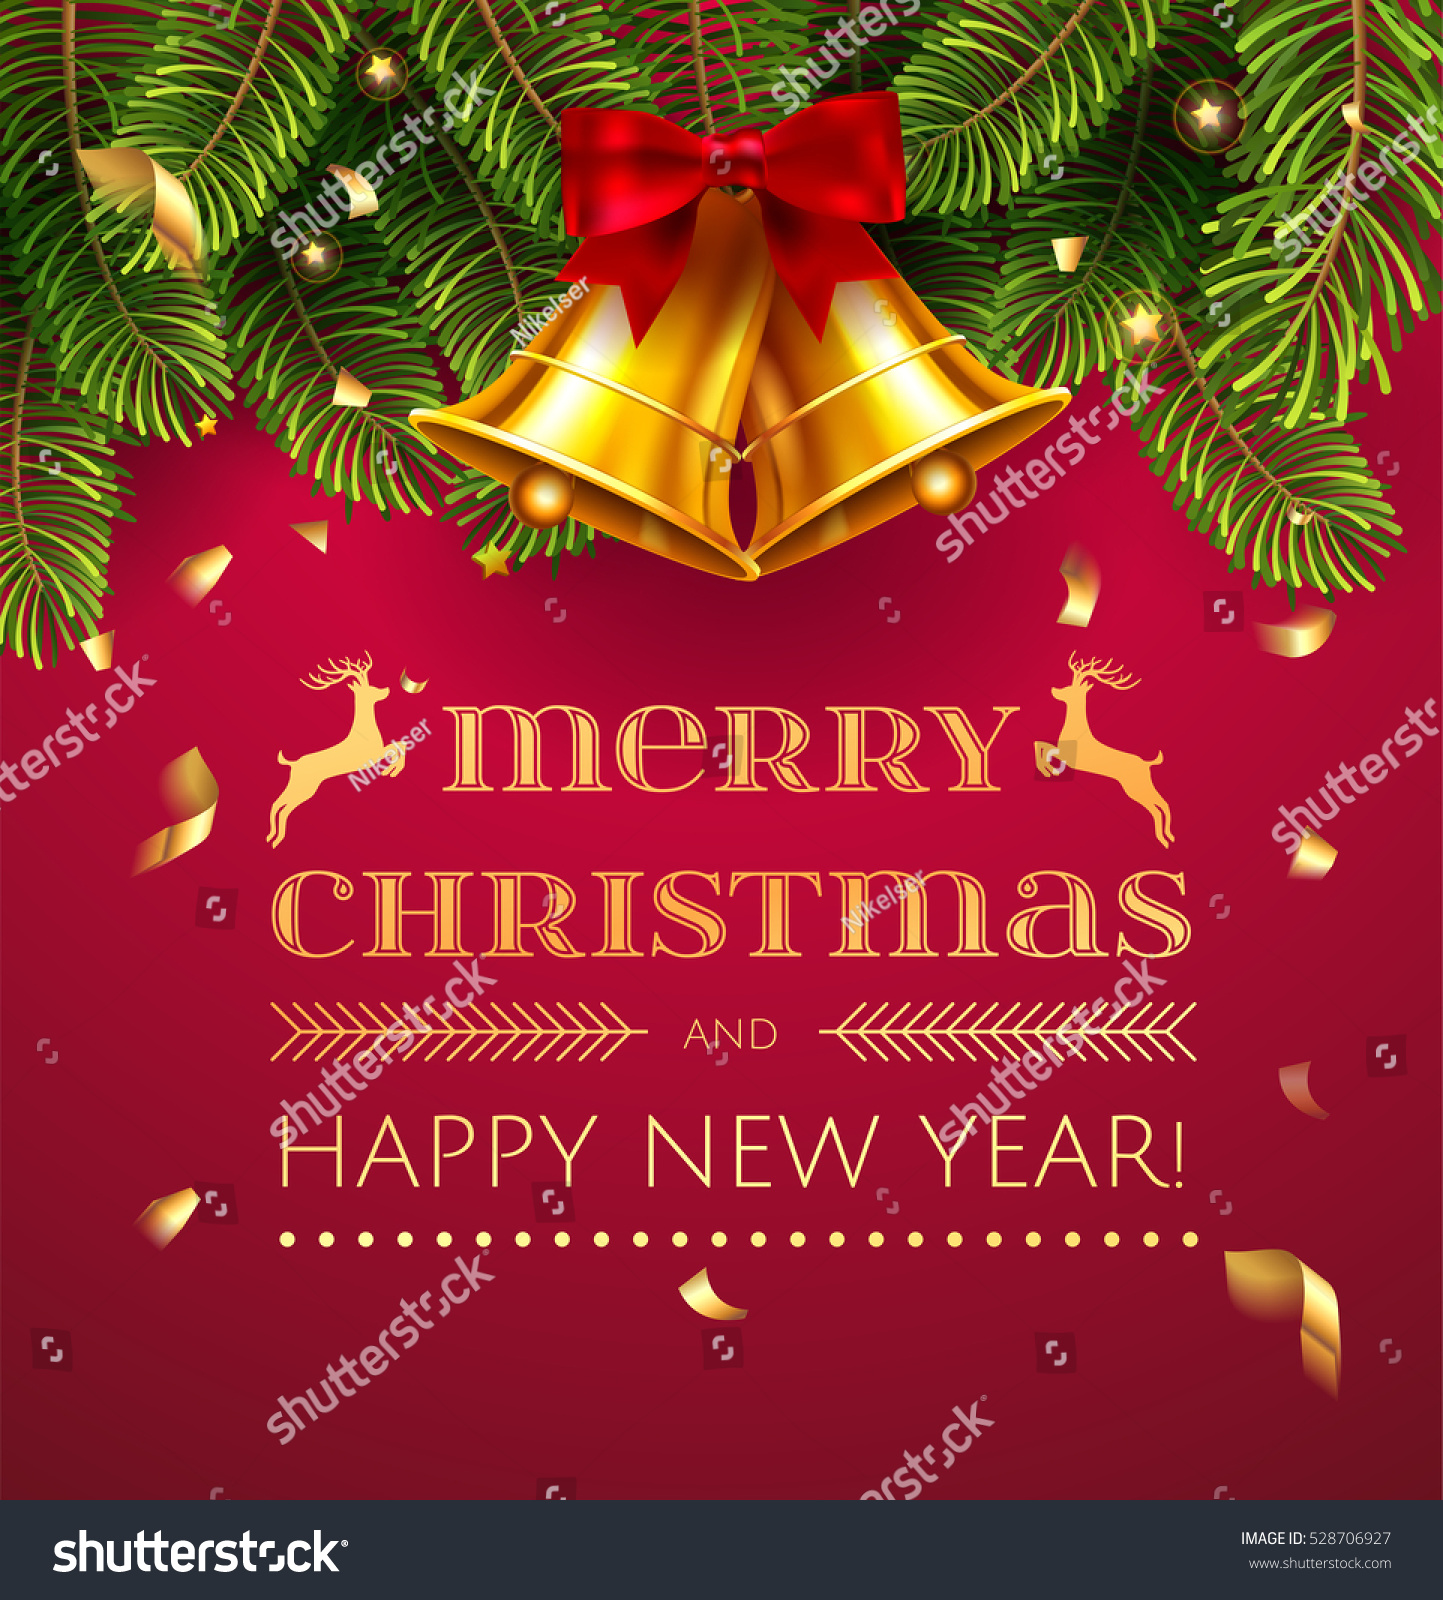 merry christmas and happy new year greeting card with chrirstmas decorations fir tree border gold